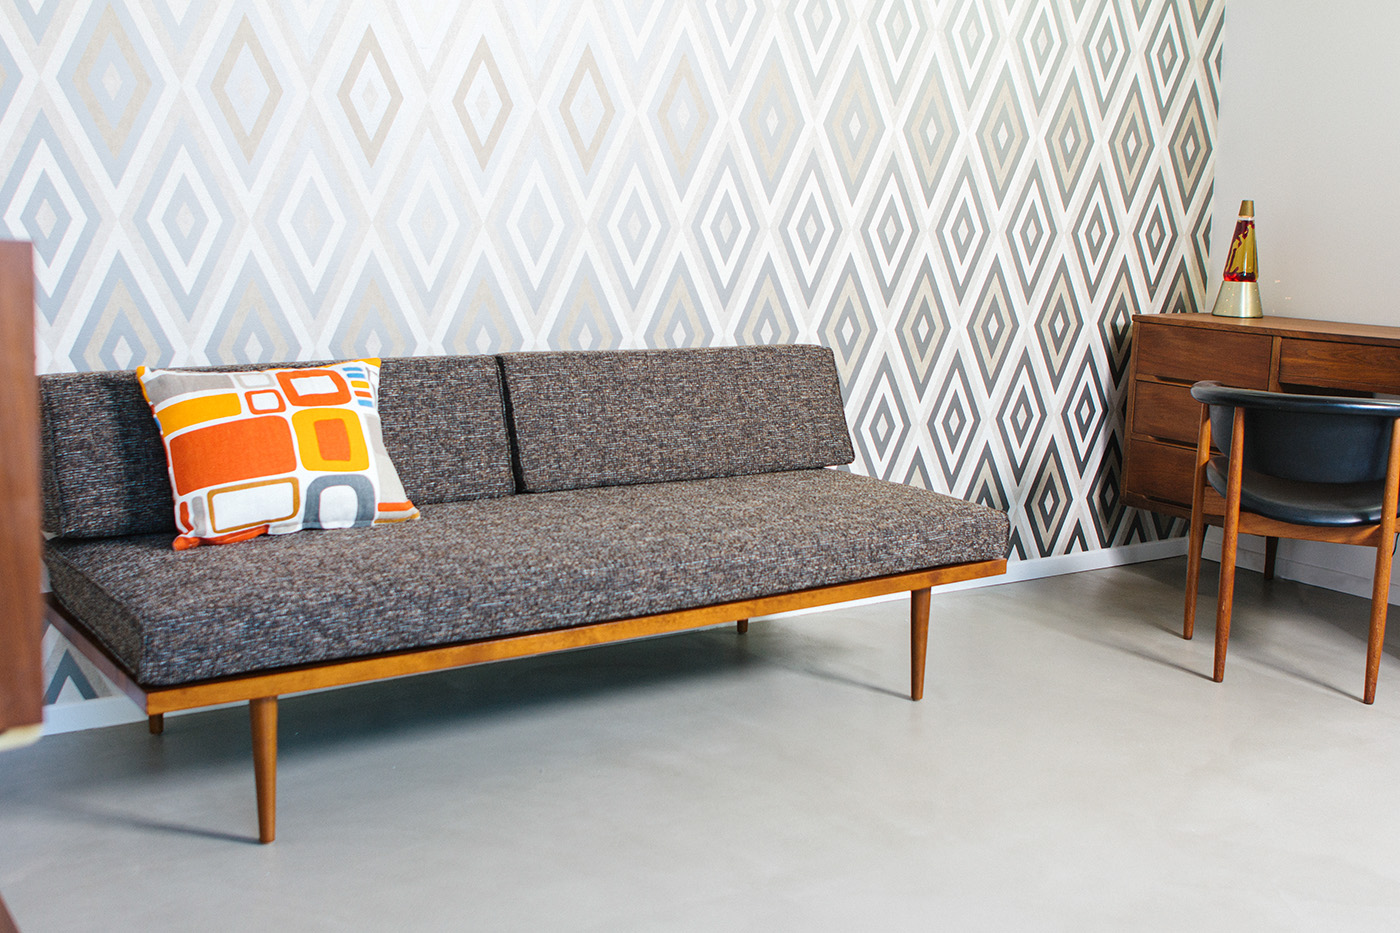 classic daybed sofa — casara modern - classic daybed sofa